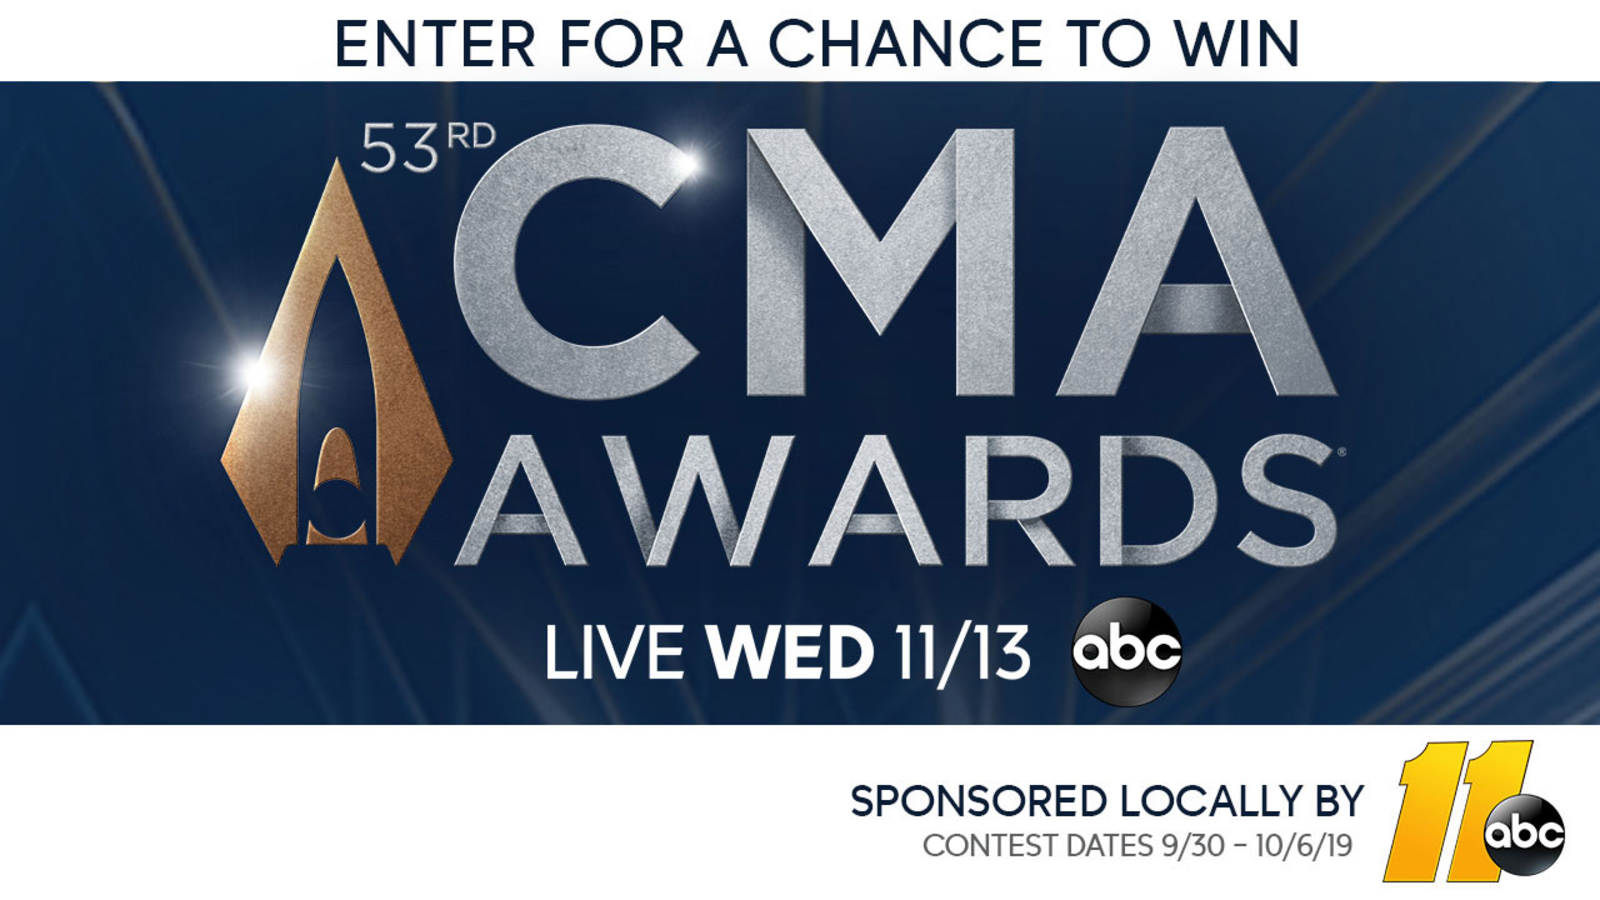 Cma Awards 2019 Sweepstakes Enter For A Chance To Win A Trip To Watch The Awards Live Abc11 Raleigh Durham